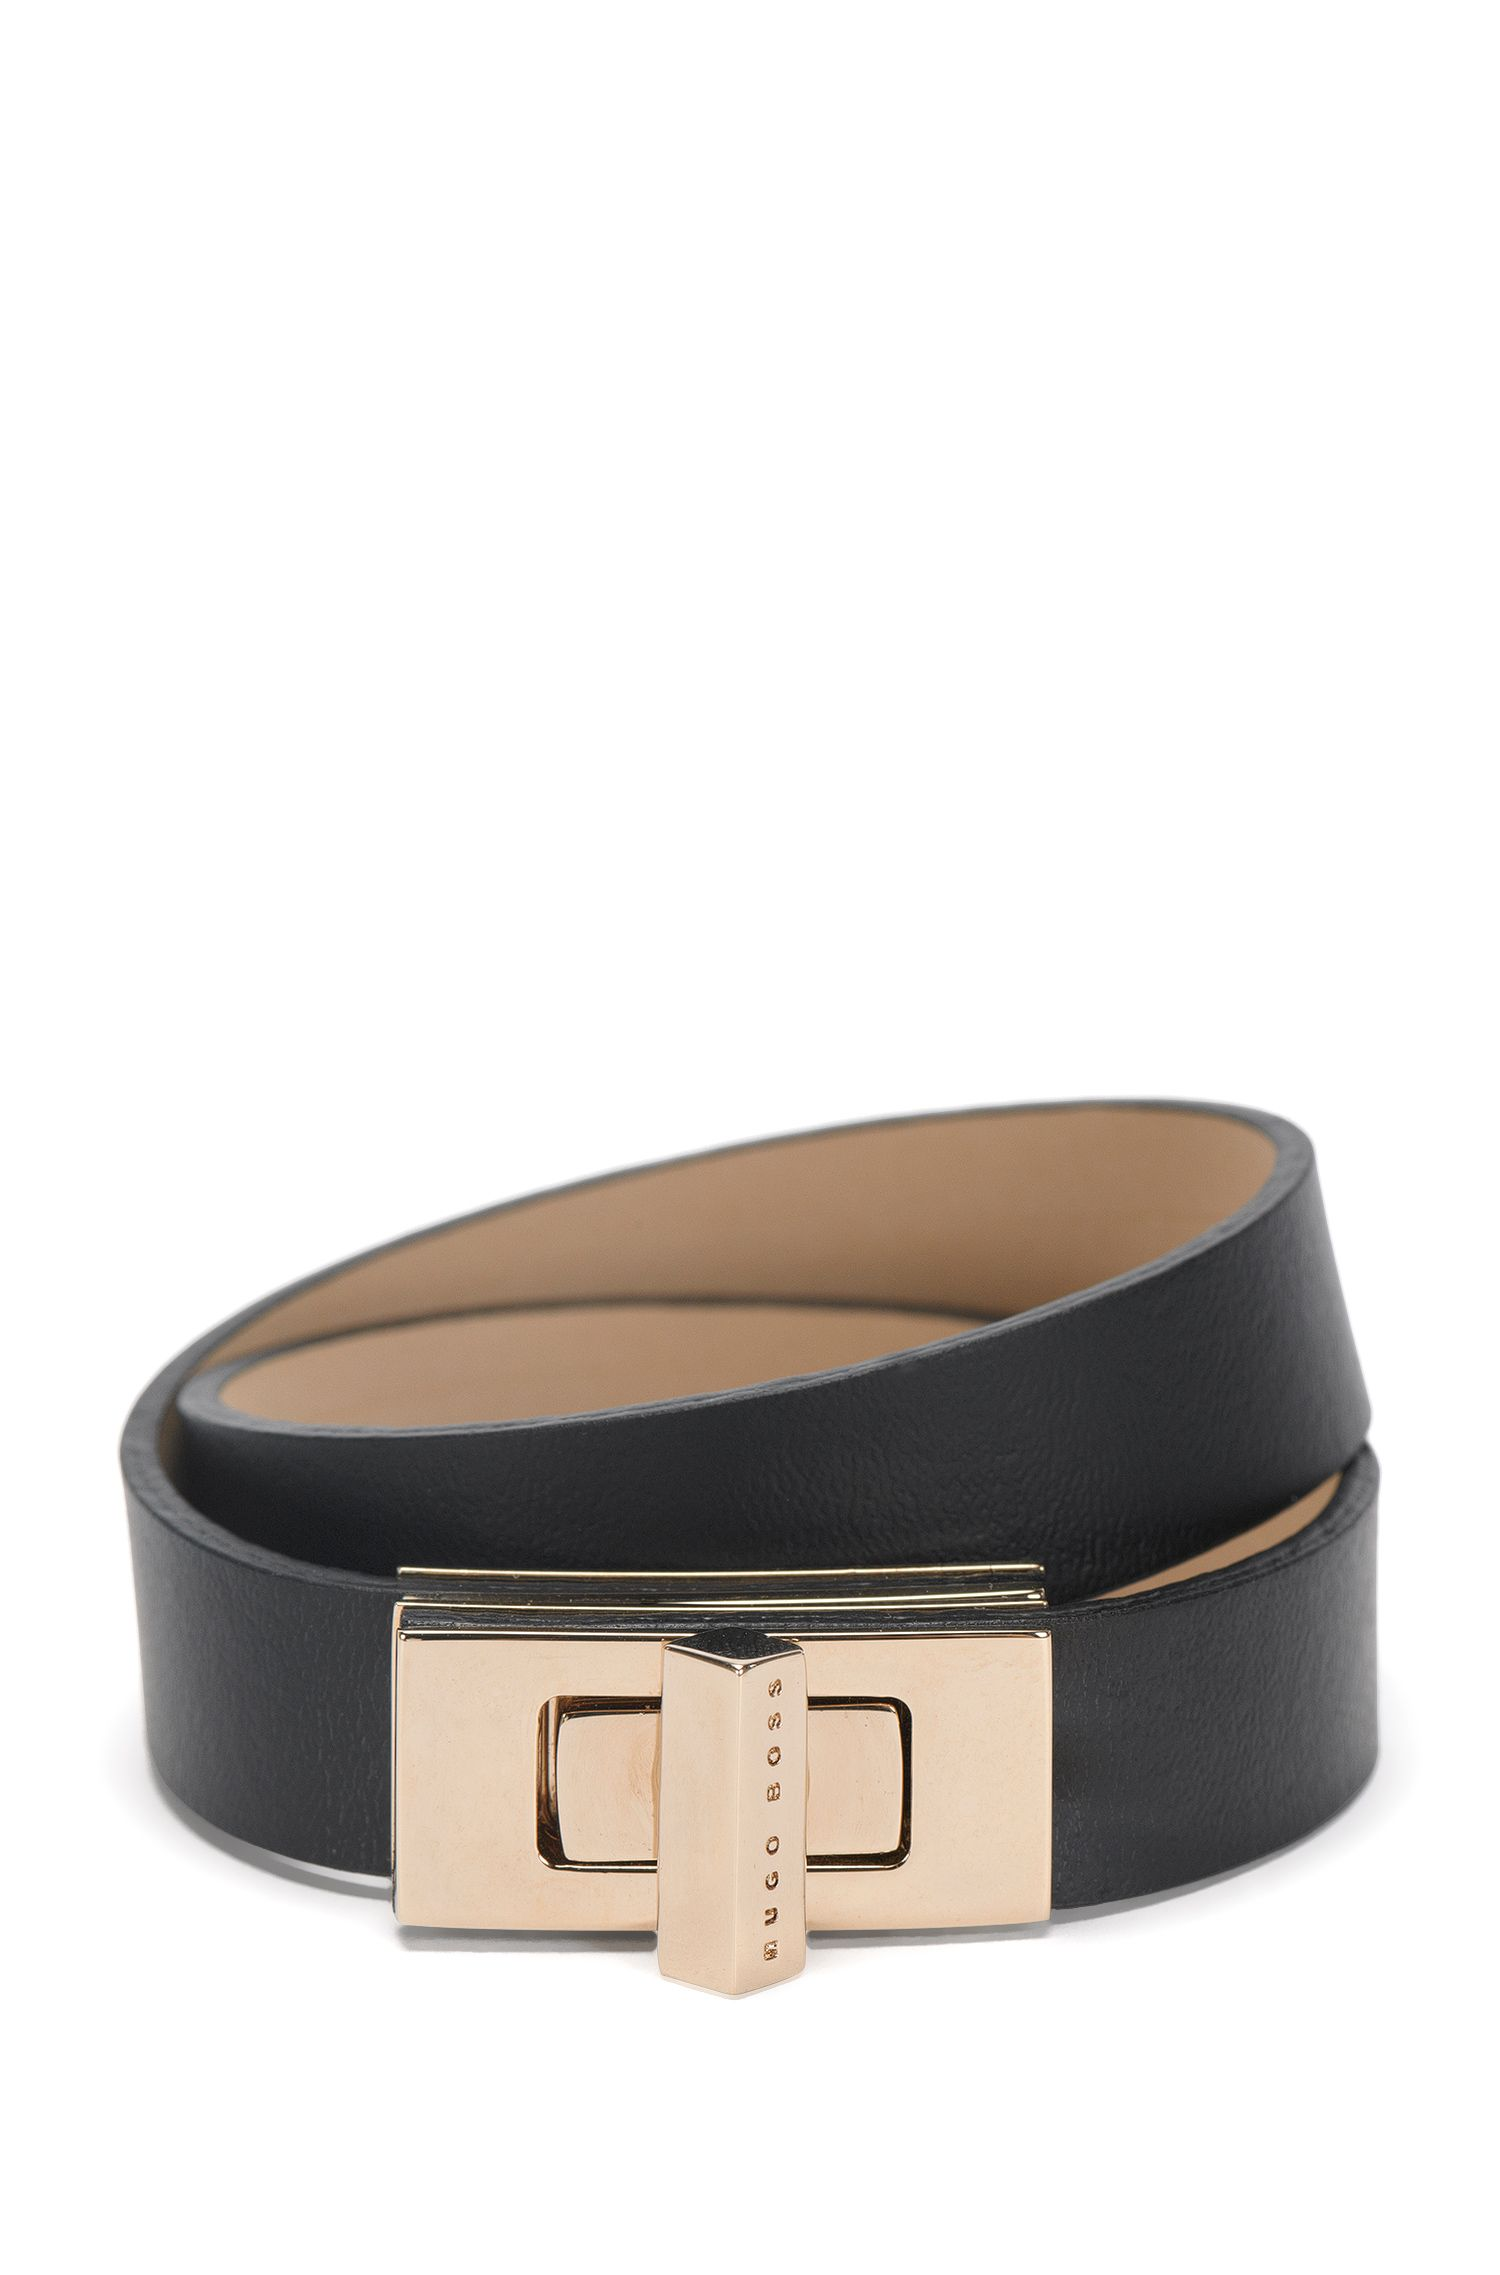 BOSS Bespoke leather bracelet with signature cufflink closure